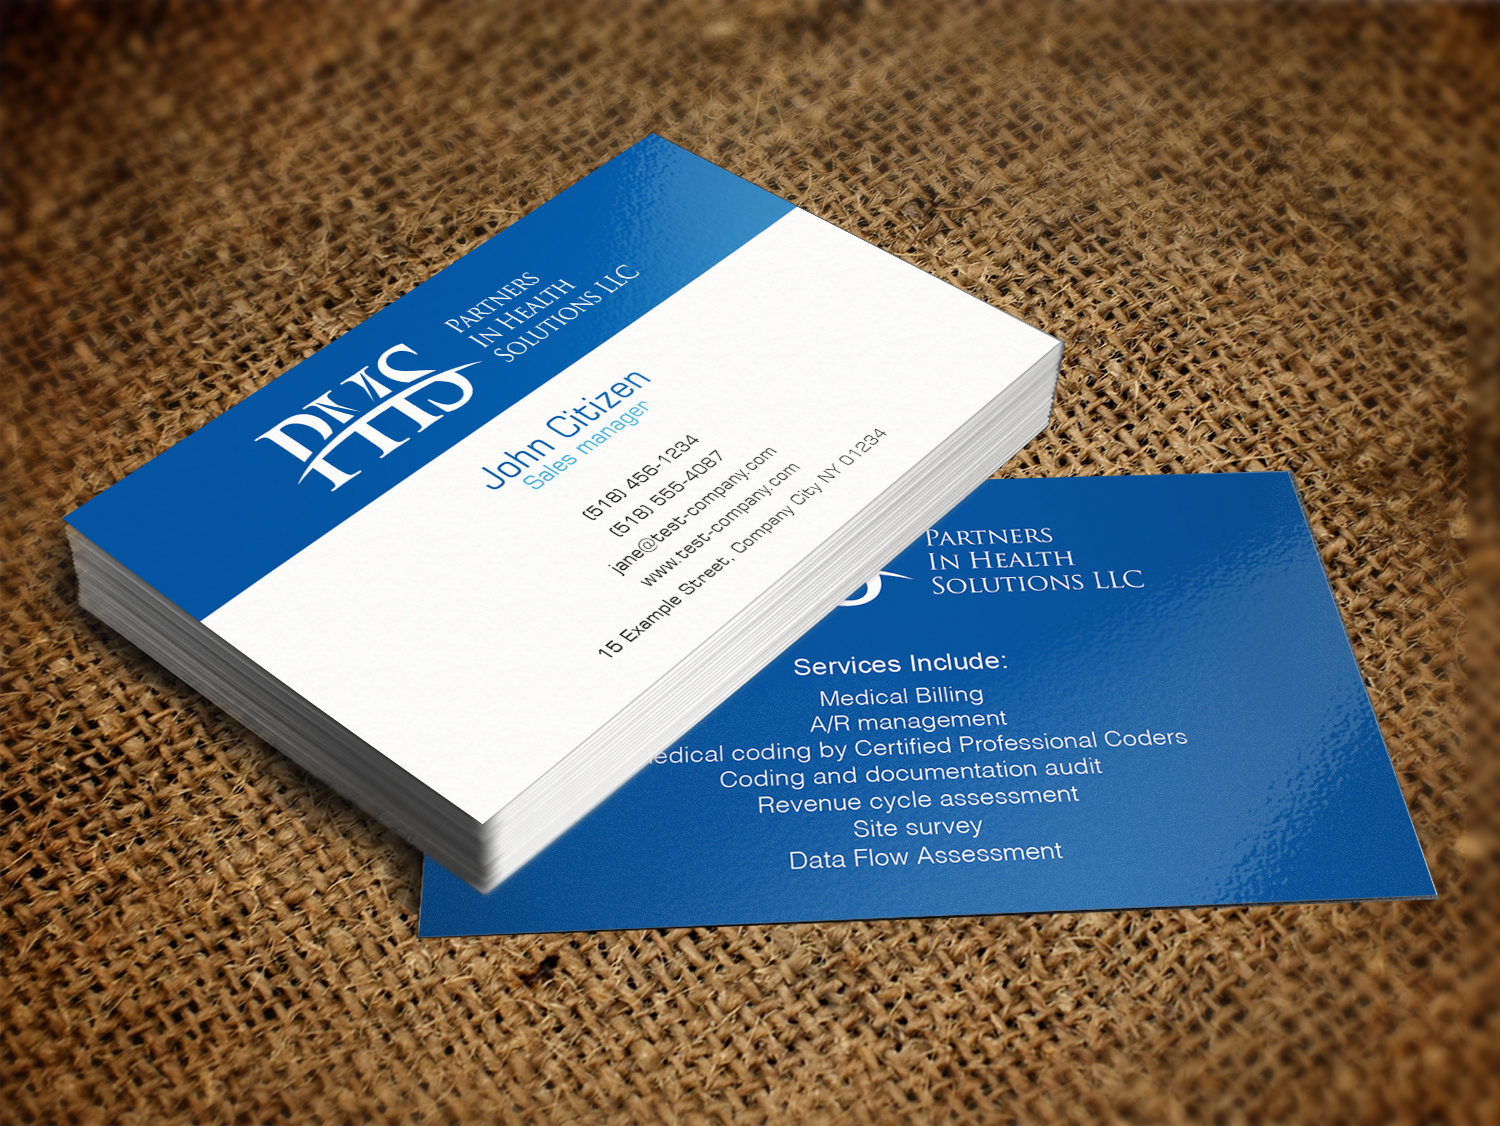 Health Professional Business Cards Image collections - Card Design ...